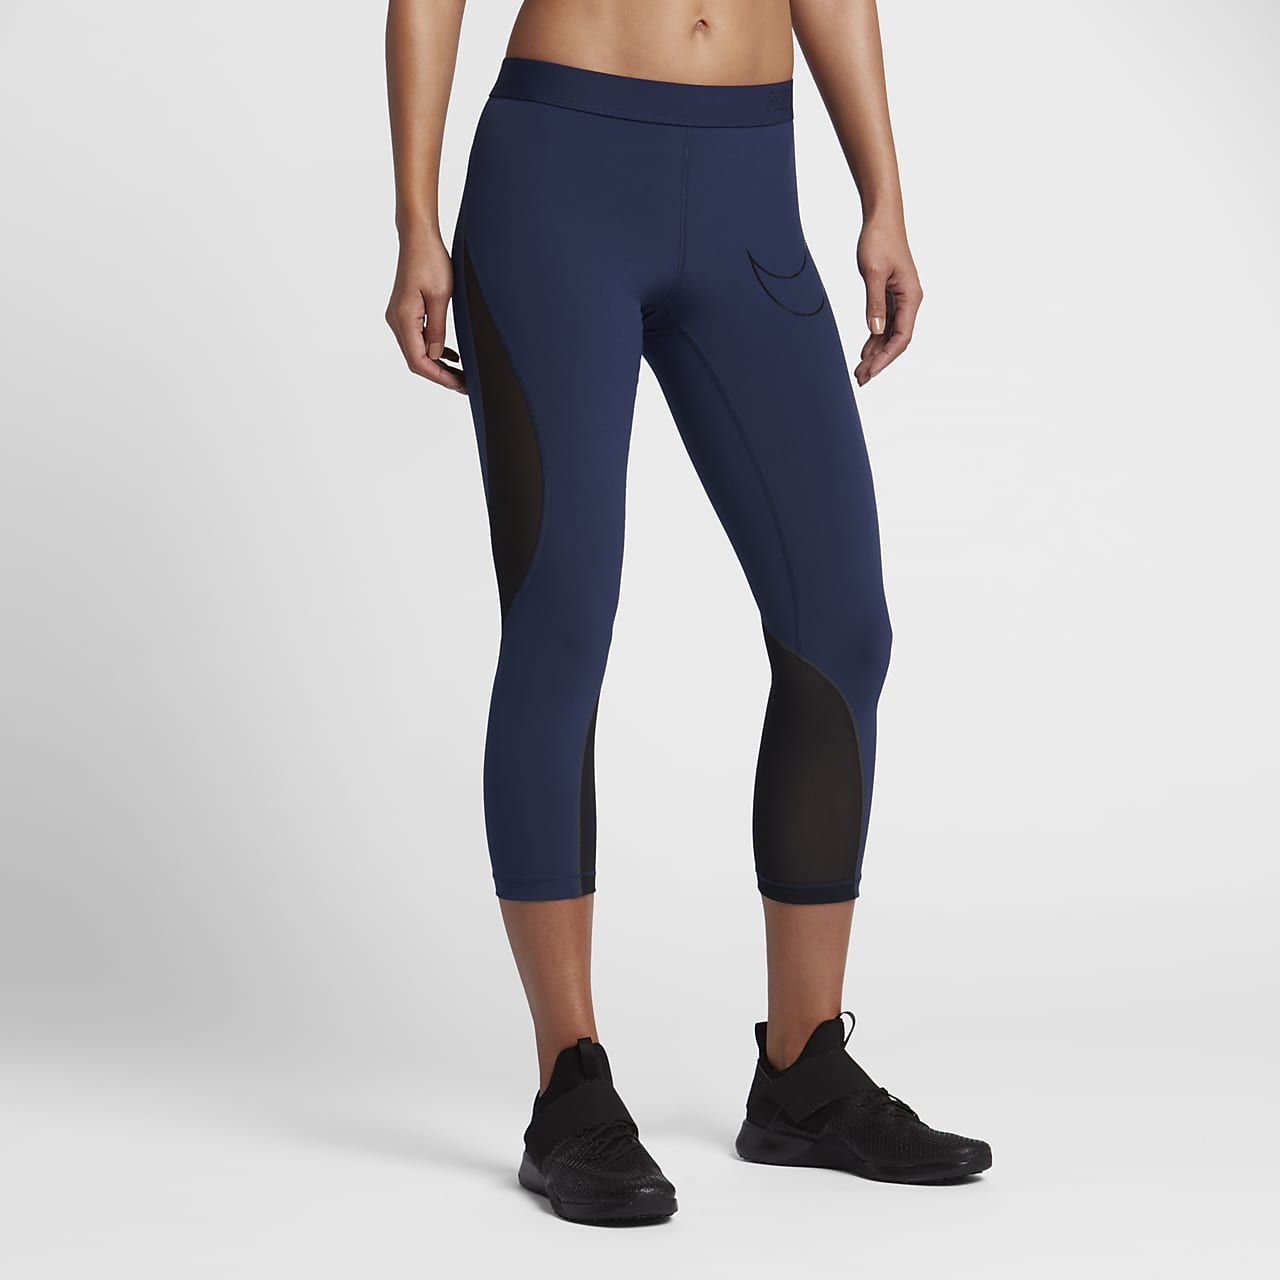 Mentalidad damnificados colonia  Nike Pro HyperCool Women's Training Capris. Nike ID